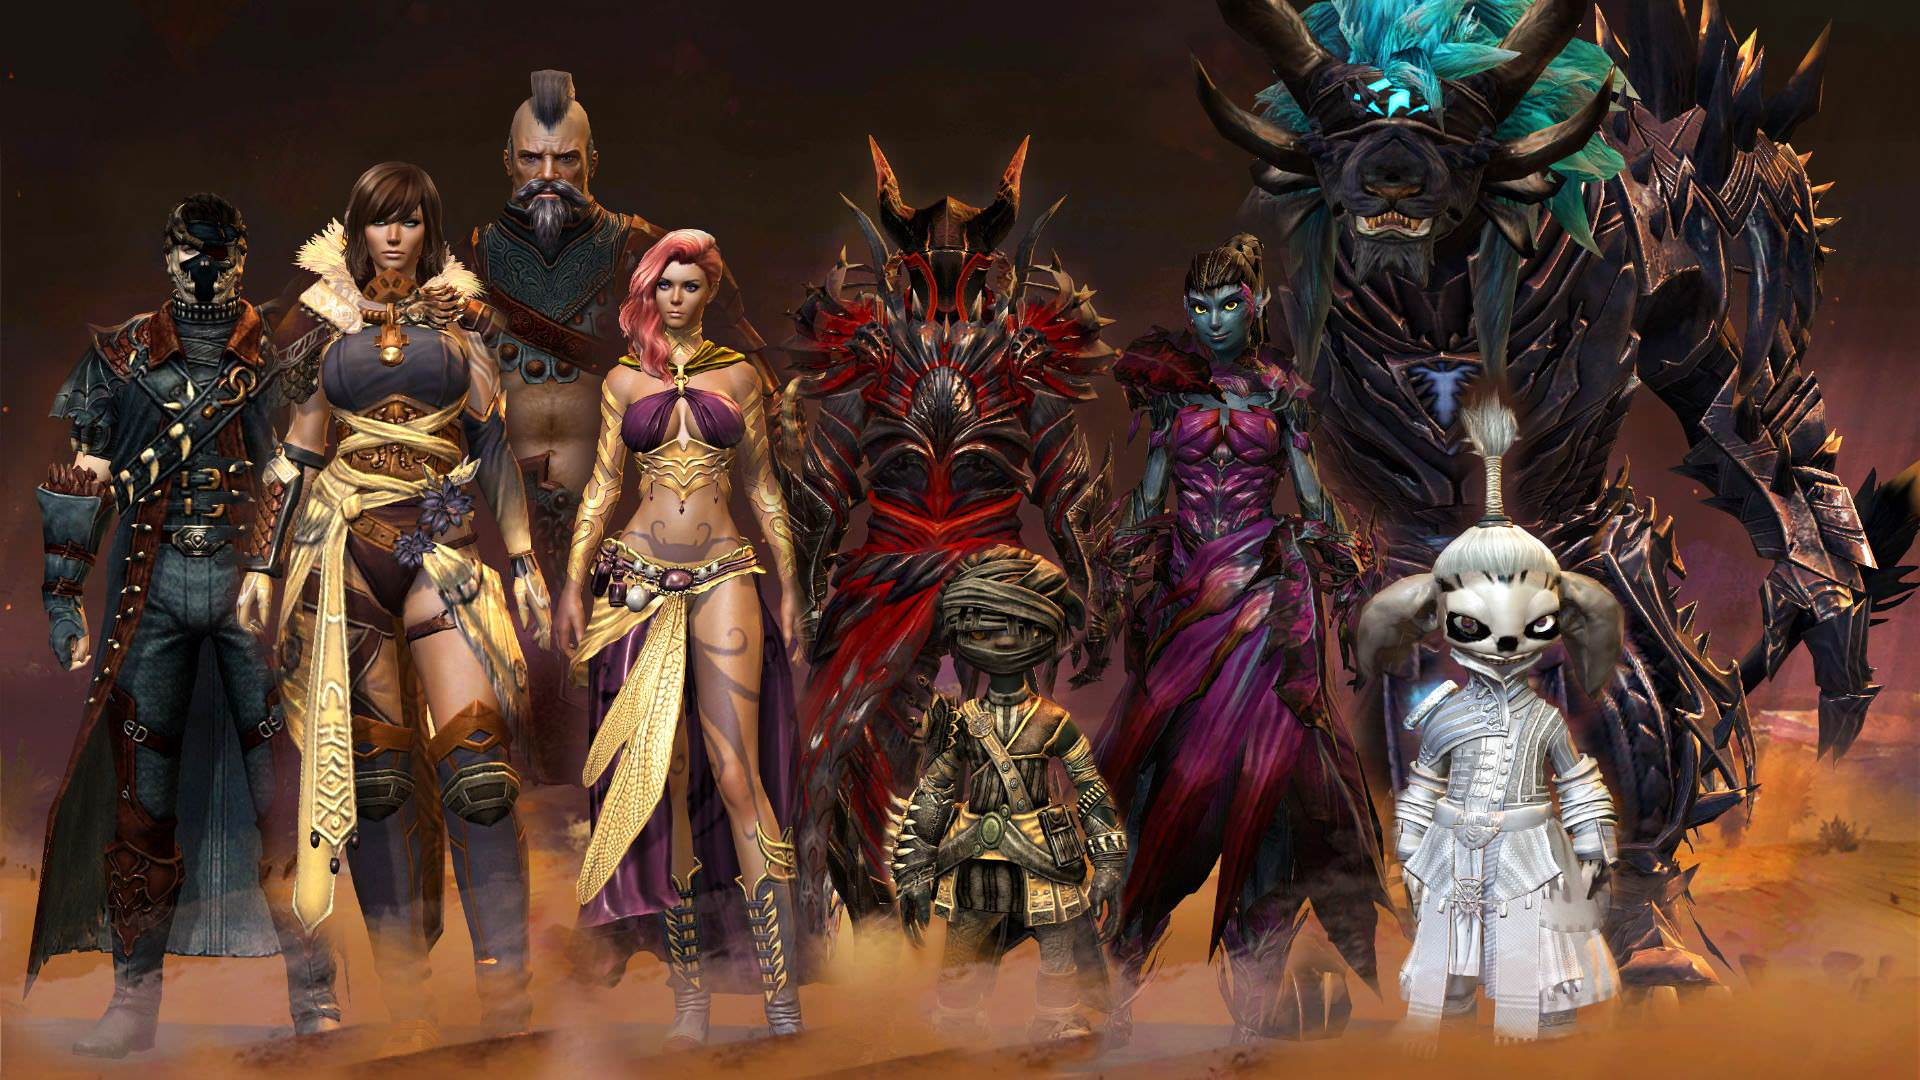 A selection of some of the classes in Guild Wars 2 that you can choose from.